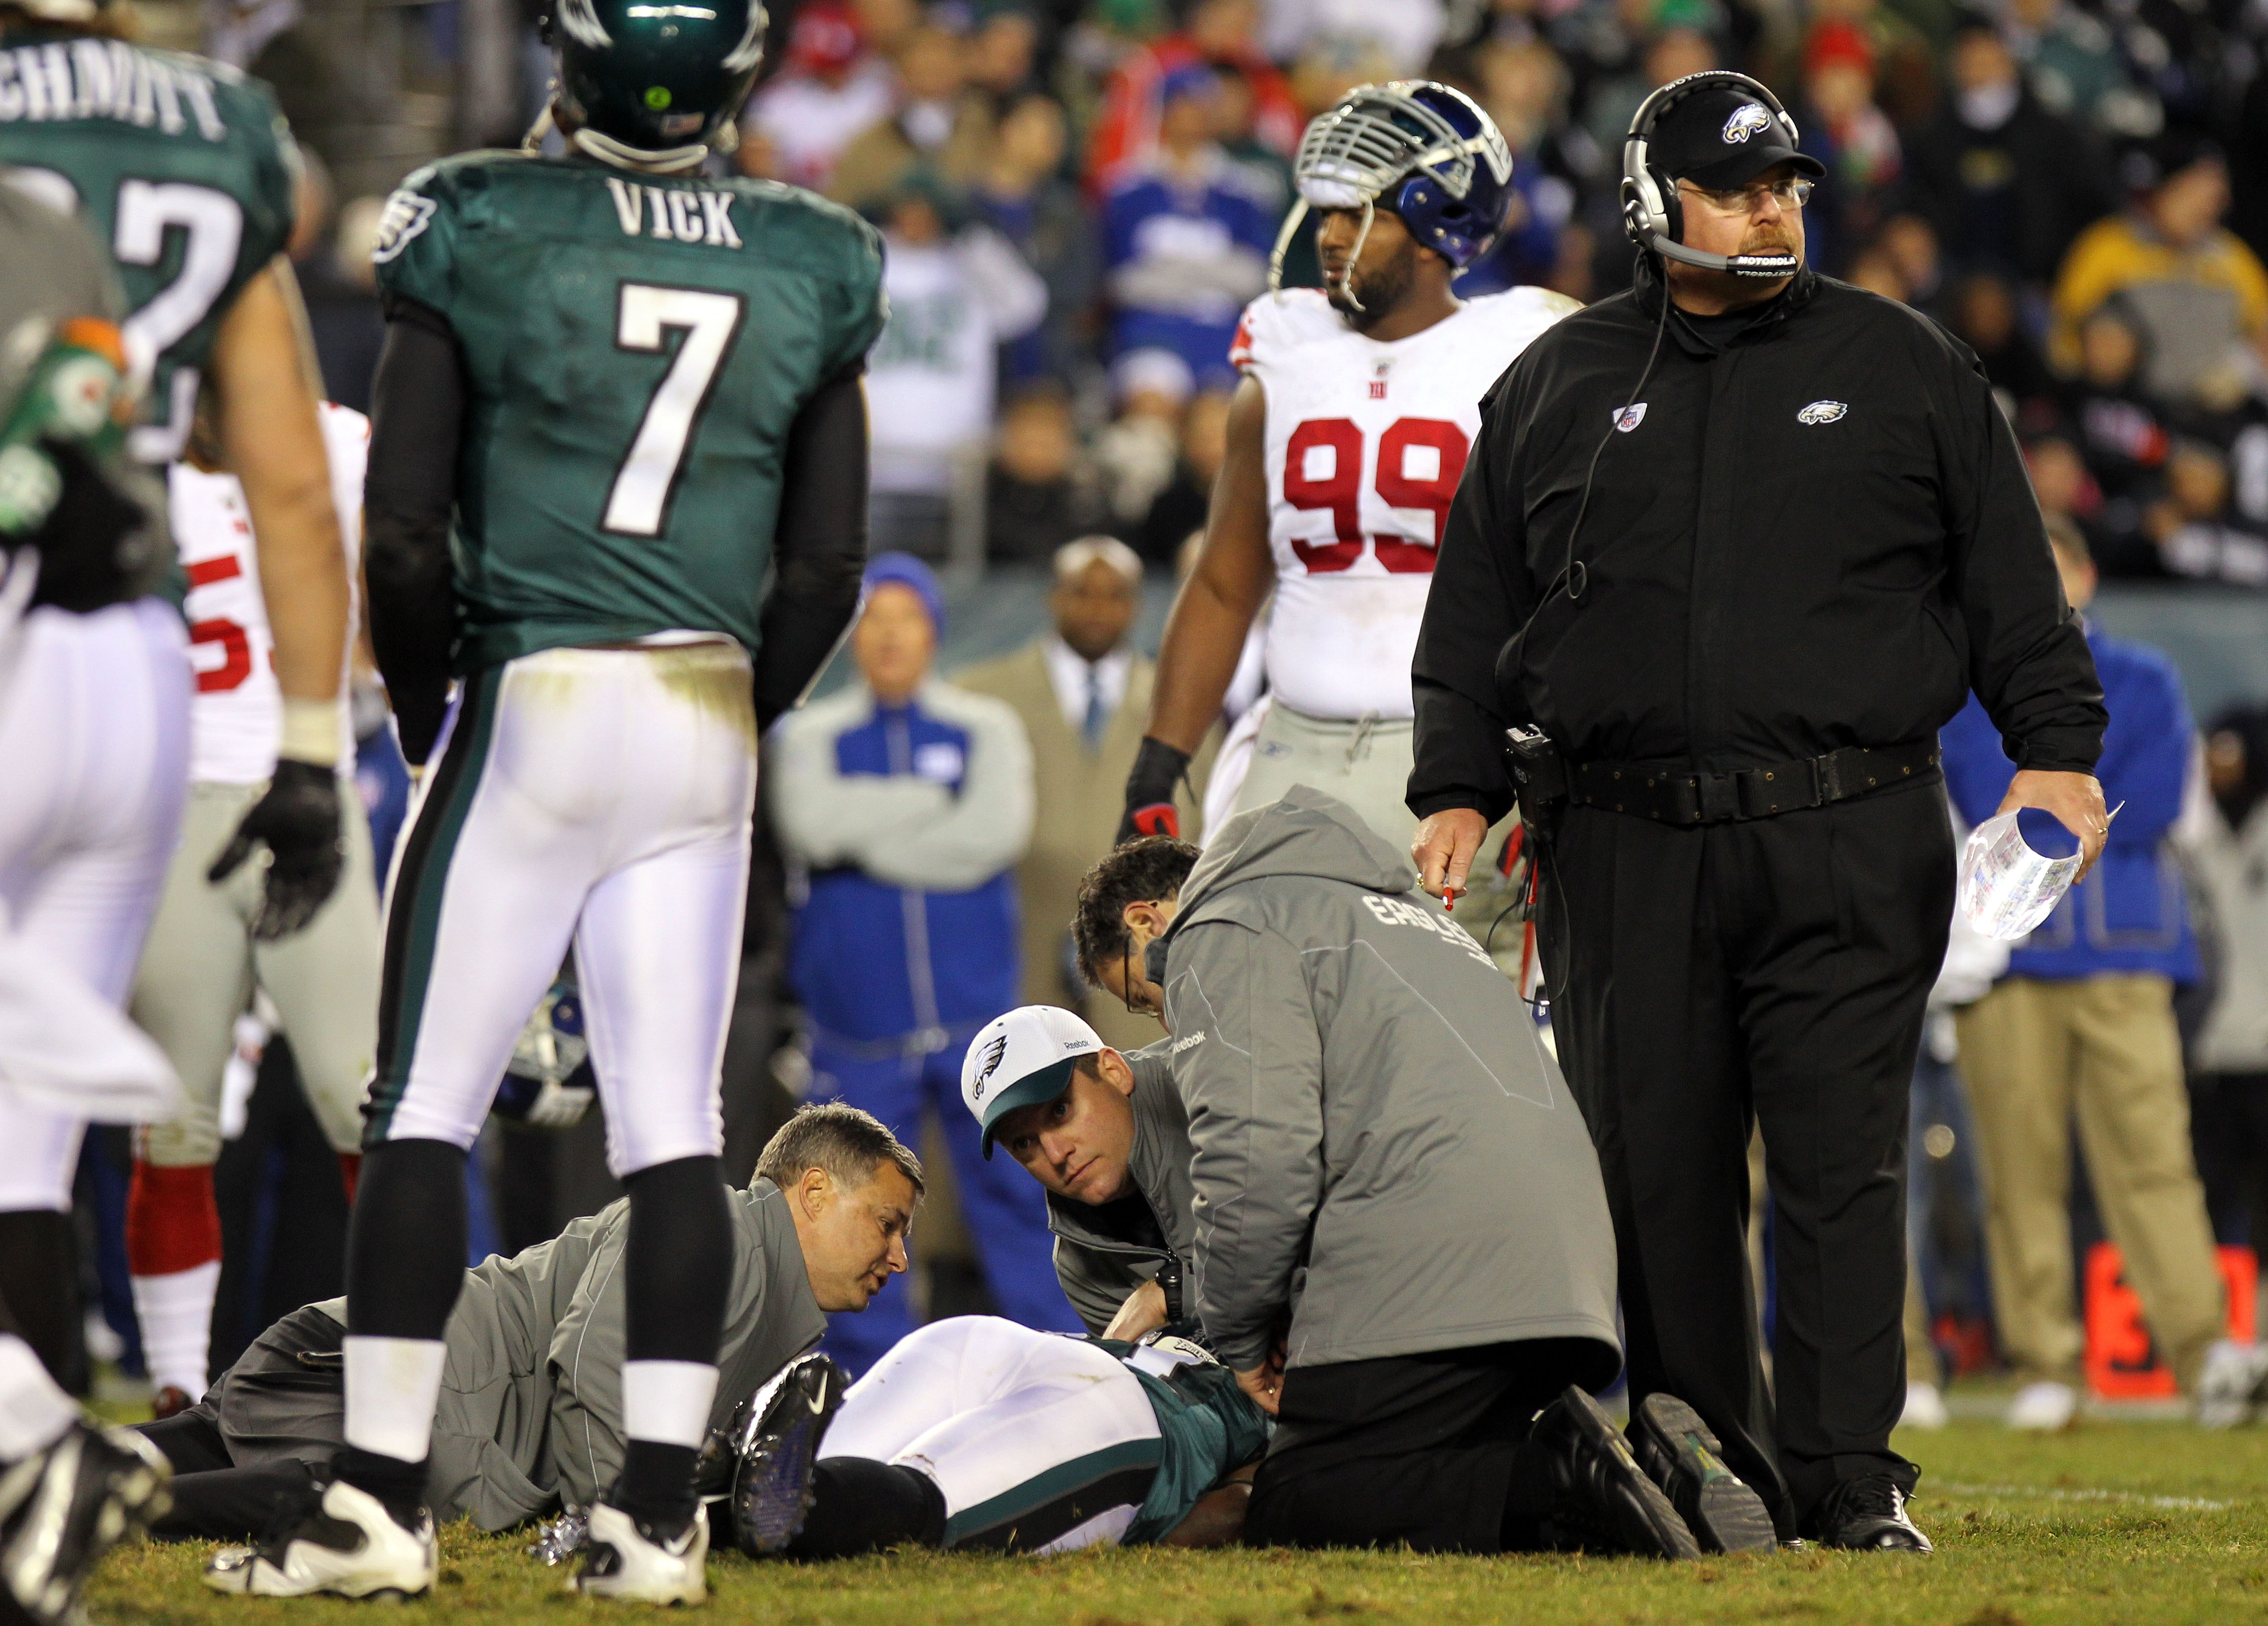 PHILADELPHIA - NOVEMBER 21: Ellis Hobbs #31 of the Philadelphia Eagles is tended to after getting injured on a kickoff returns against the New York Giants as head coach Andy Reid (R) looks on at Lincoln Financial Field on November 21, 2010 in Philadelphia